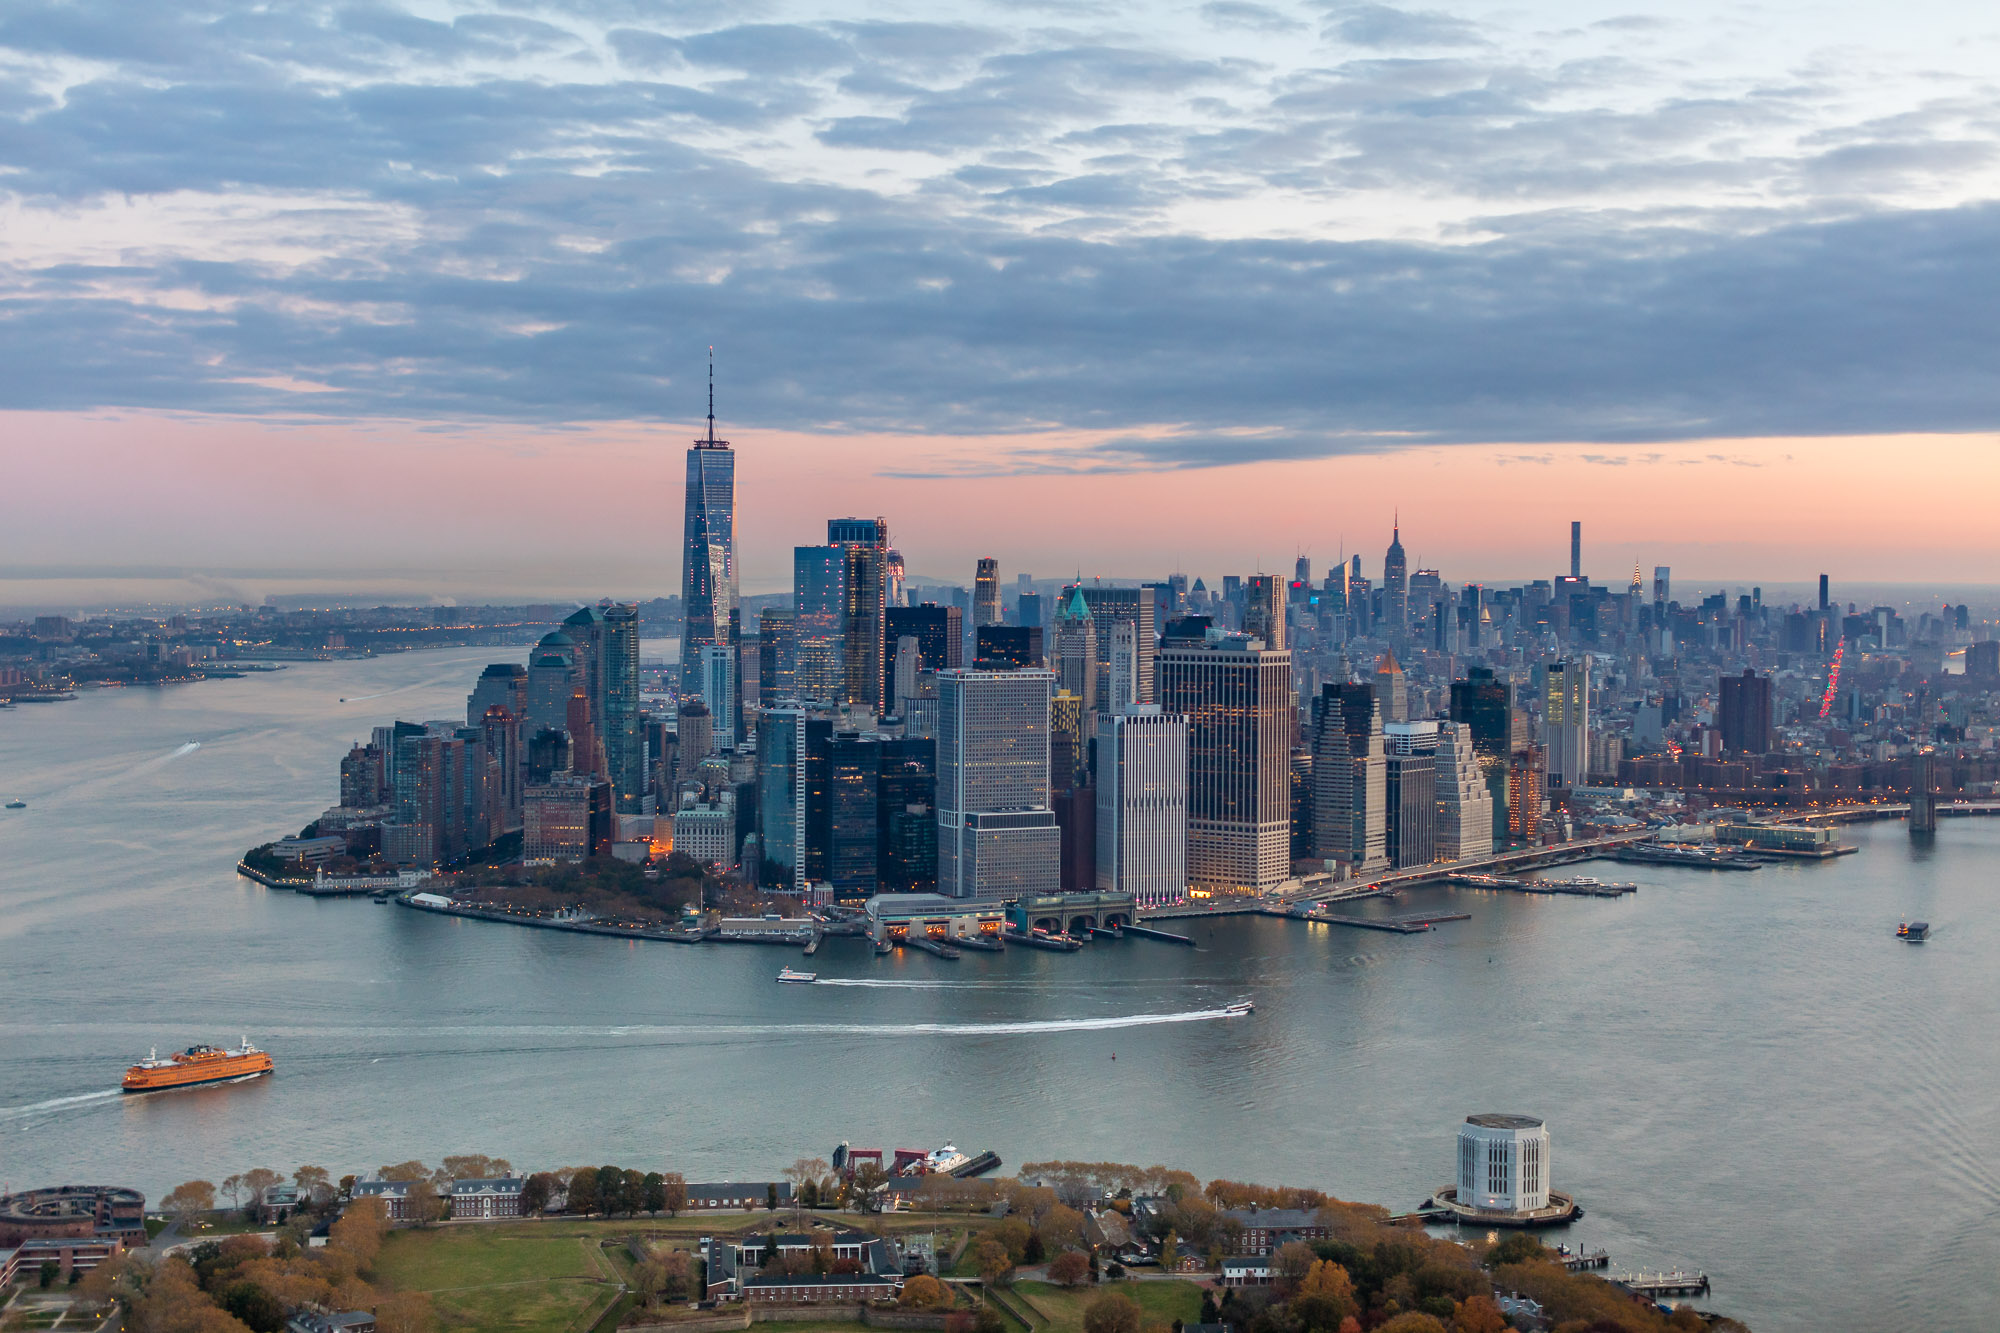 An arial view of several skyscraper buildings in lower Manhattan surrounded by the East and Hudson rivers.